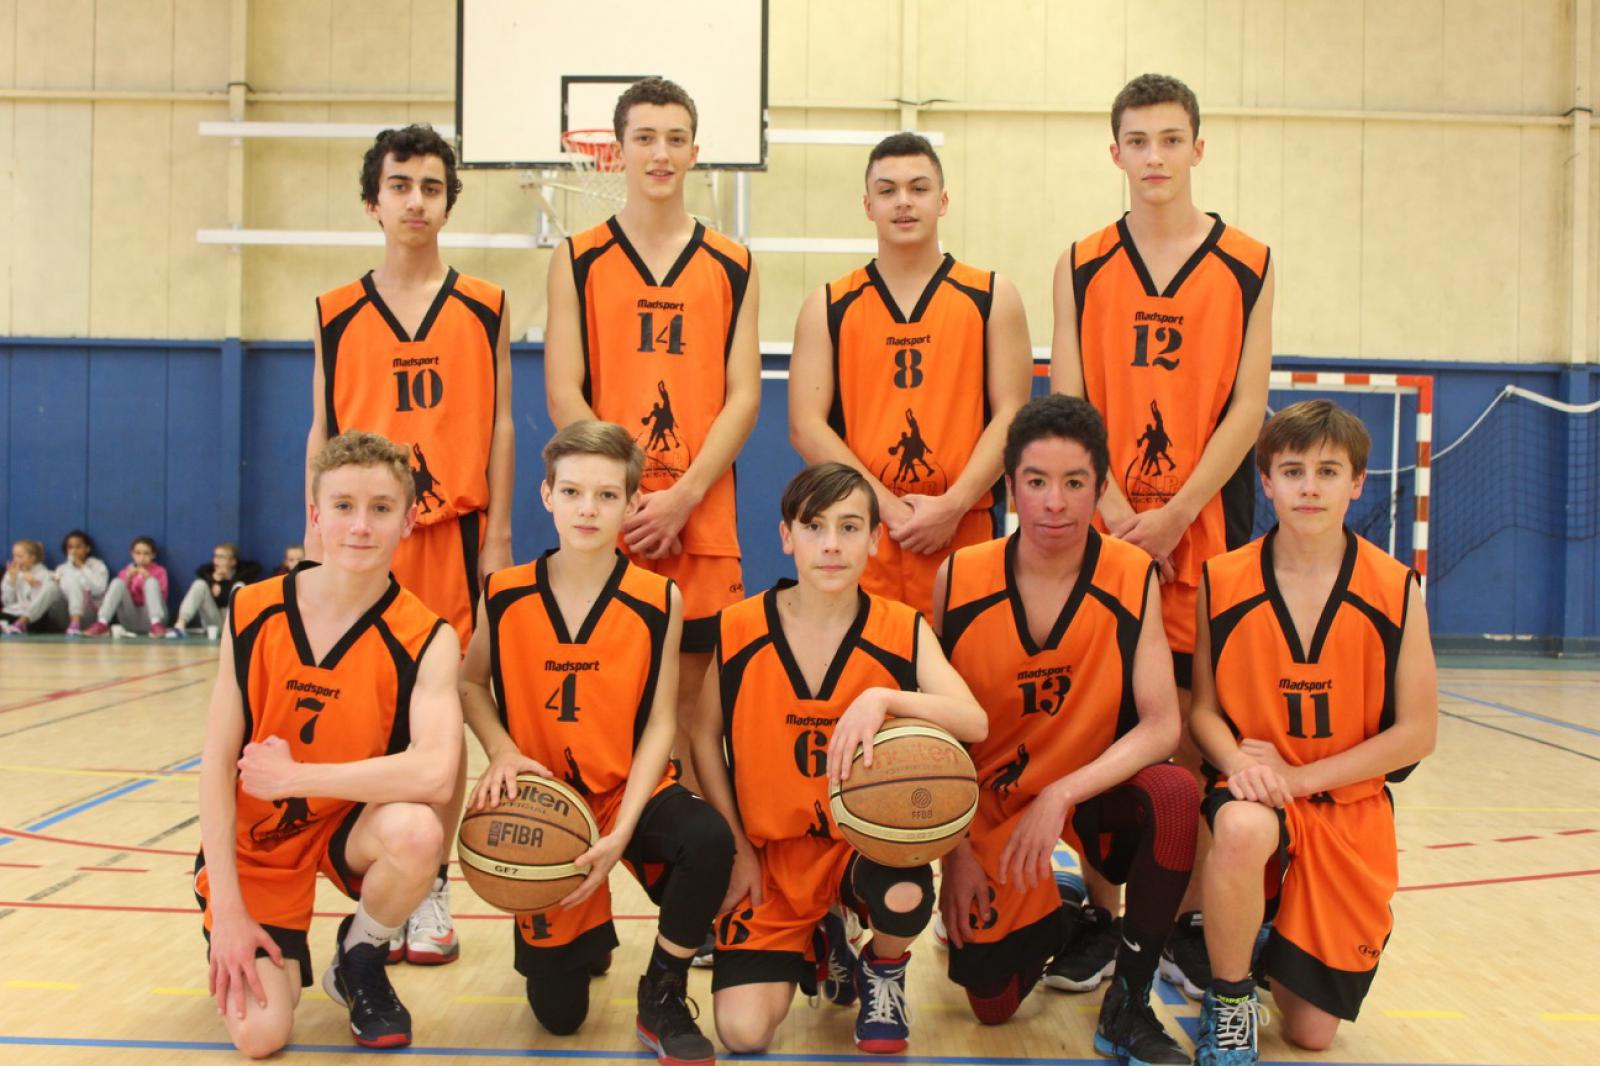 U15 GARS CTC - COMPETITION - AL PLOUFRAGAN BASKET-BALL